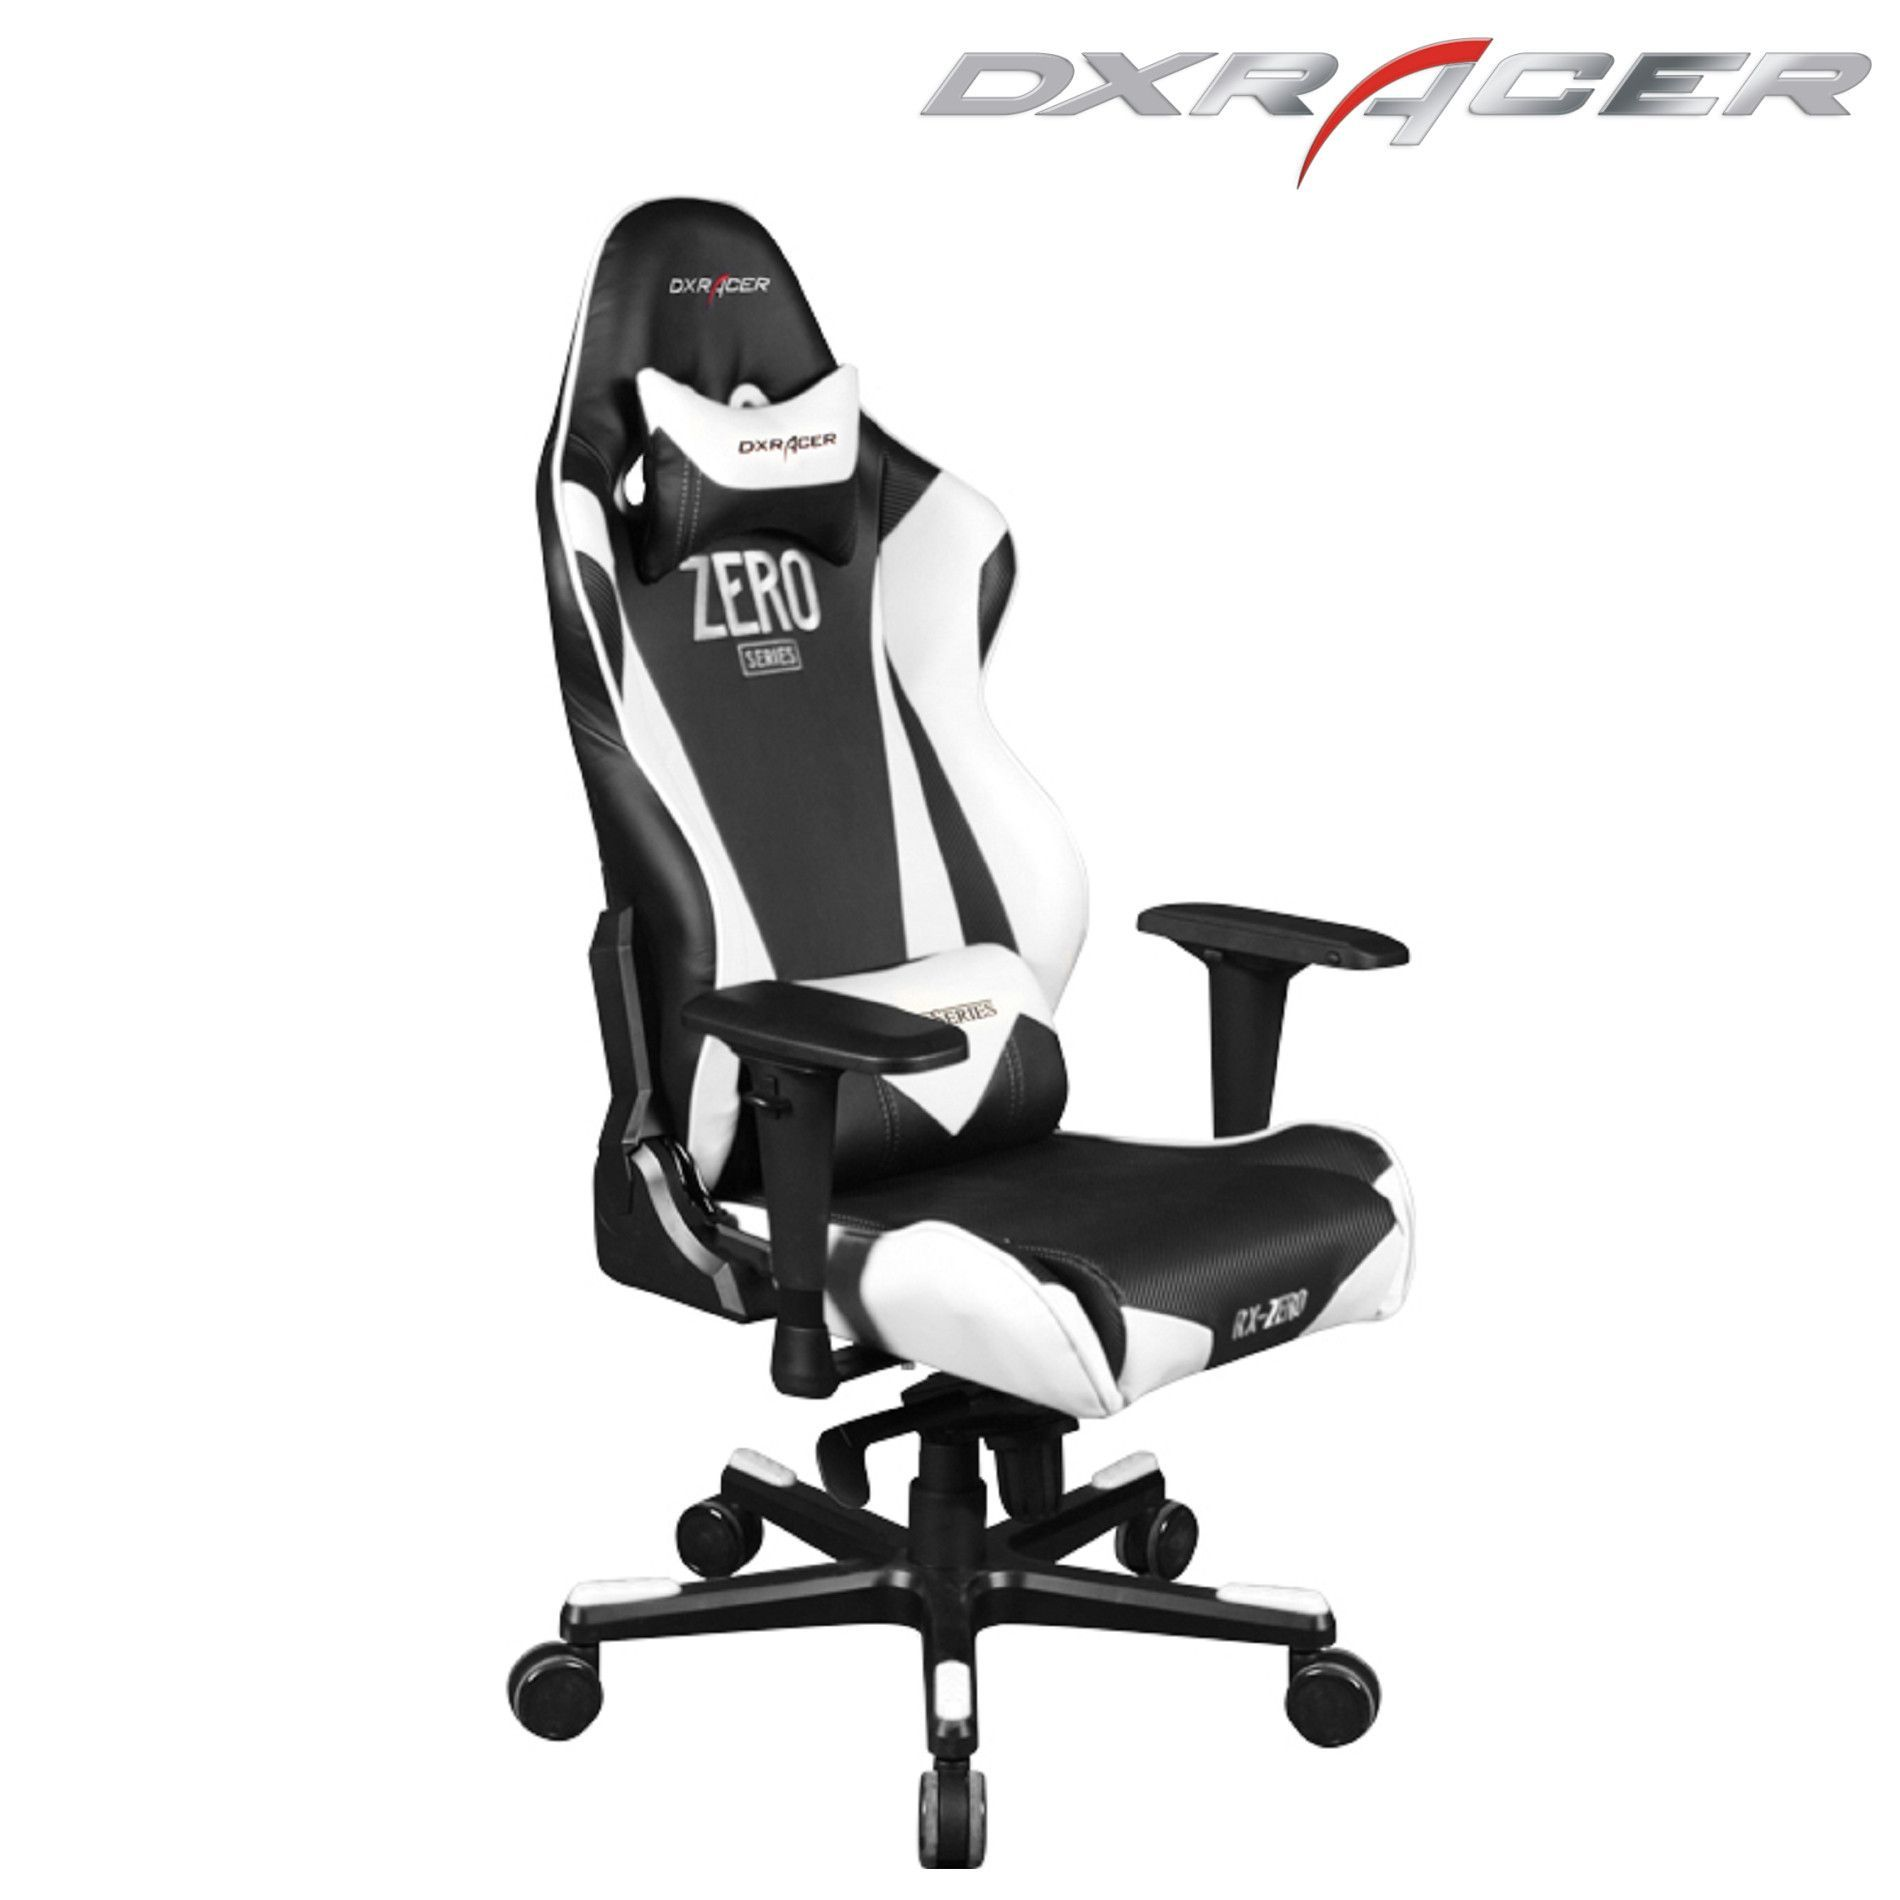 DXRACER RJ0IINW puter chair office chair esport chair gaming